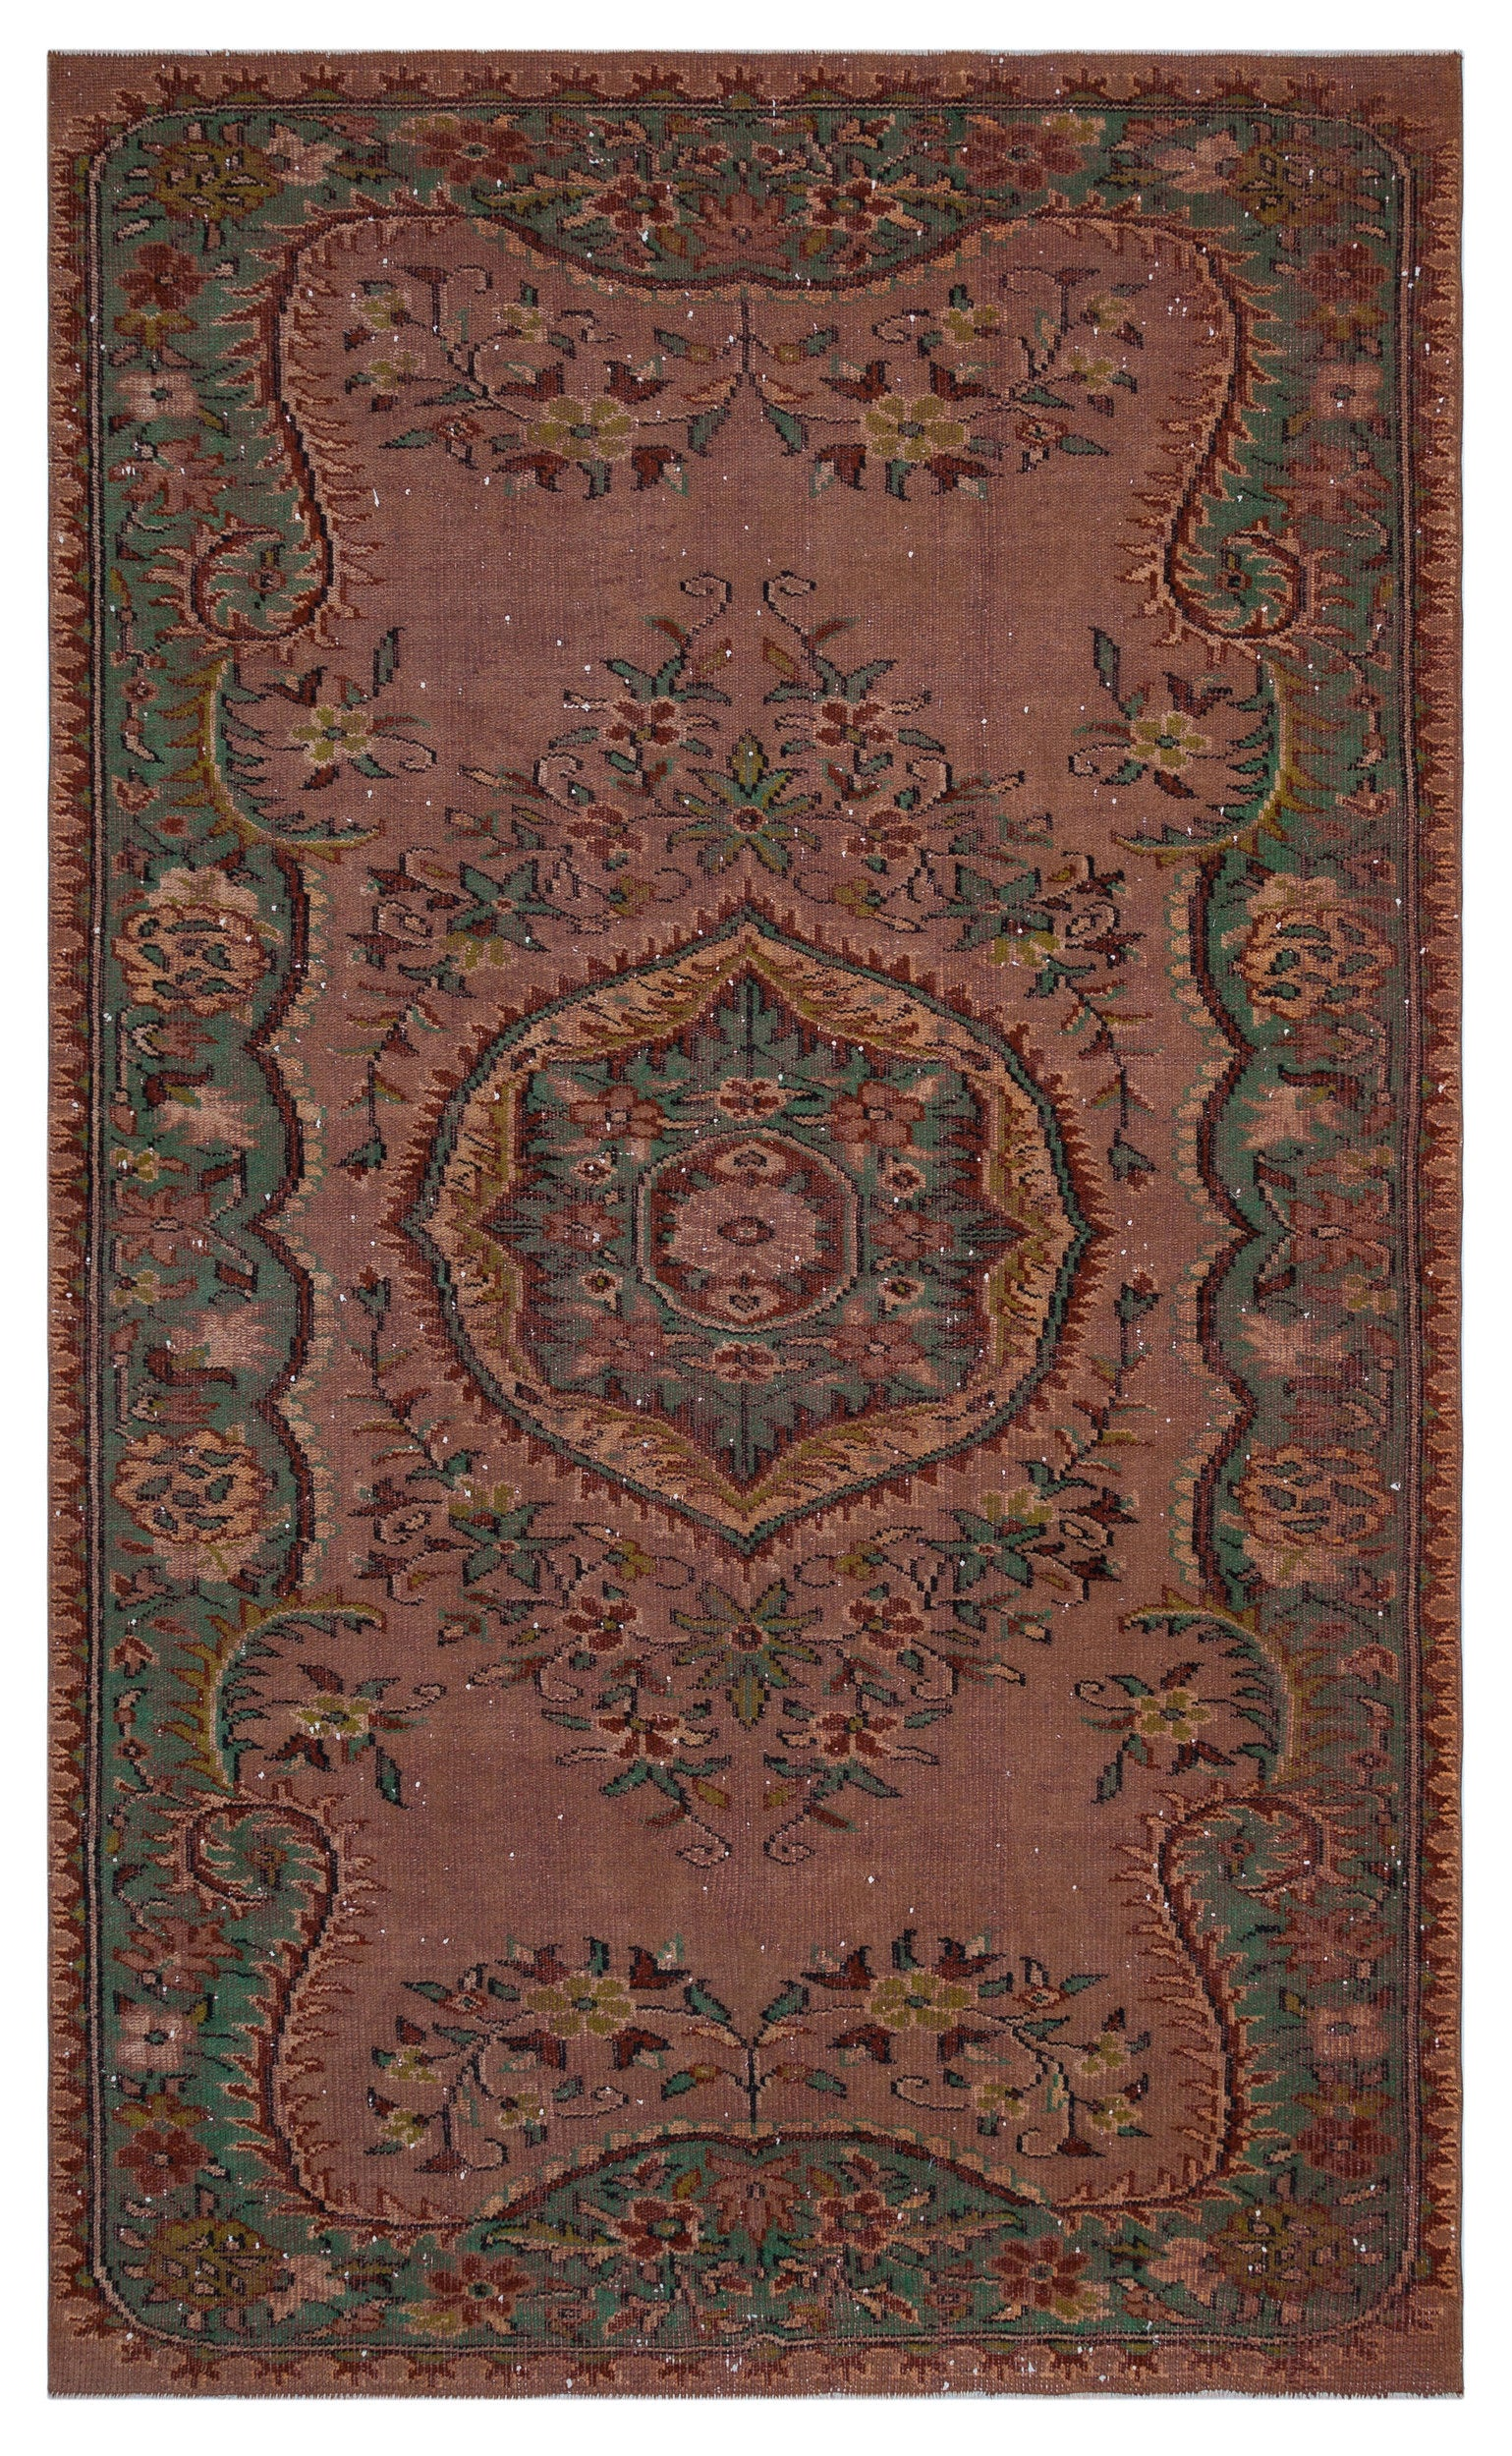 Naturel Over Dyed Vintage Rug 6'1'' x 9'11'' ft 185 x 303 cm